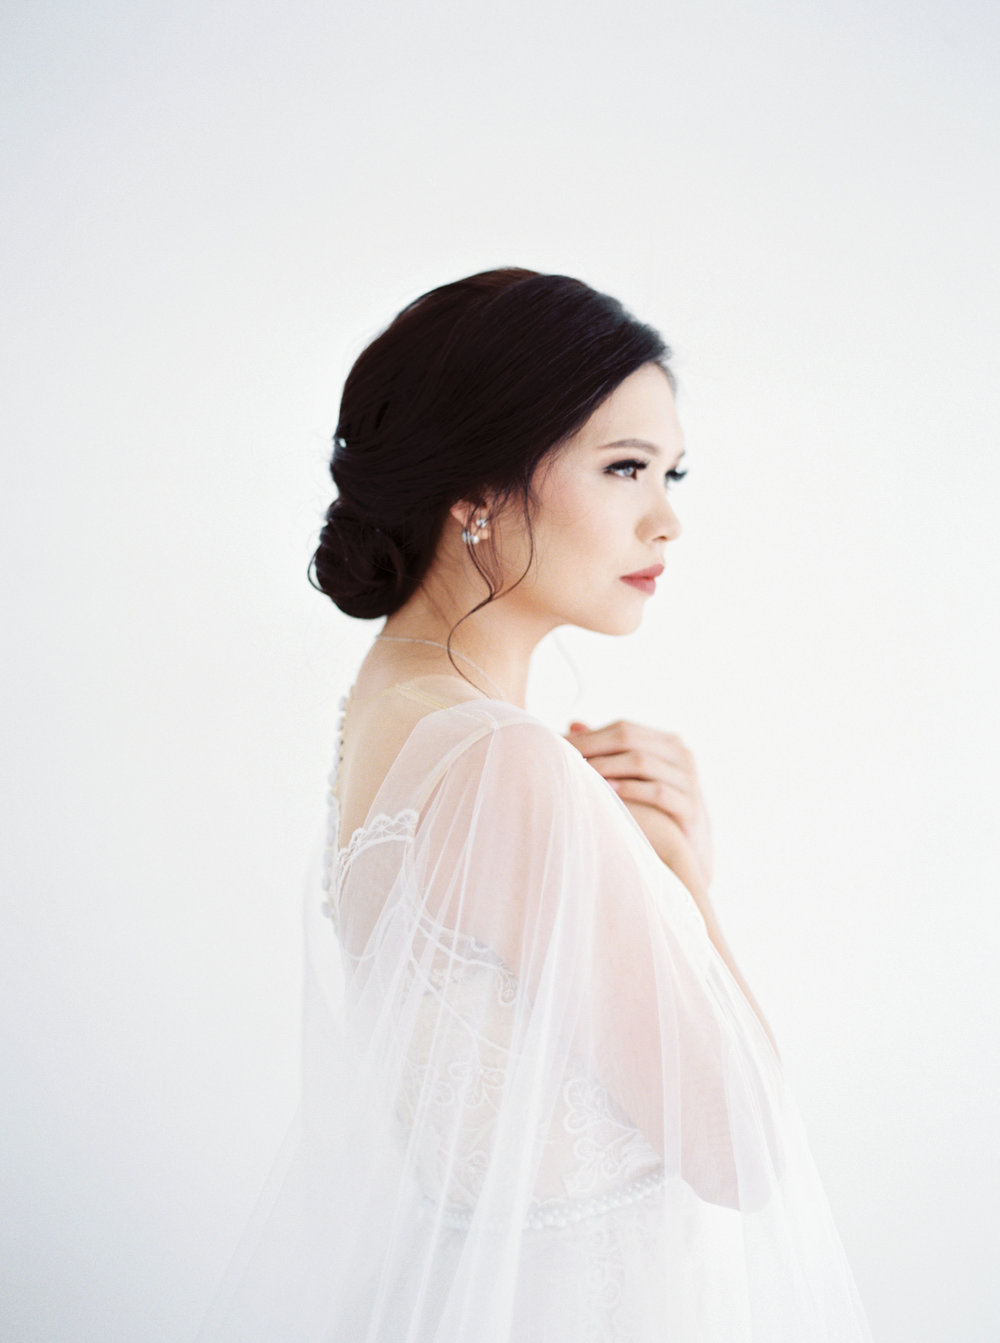 happy-ethereal bridal portrait-studio june-bramanta wijaya-mila wijaya-1.jpg